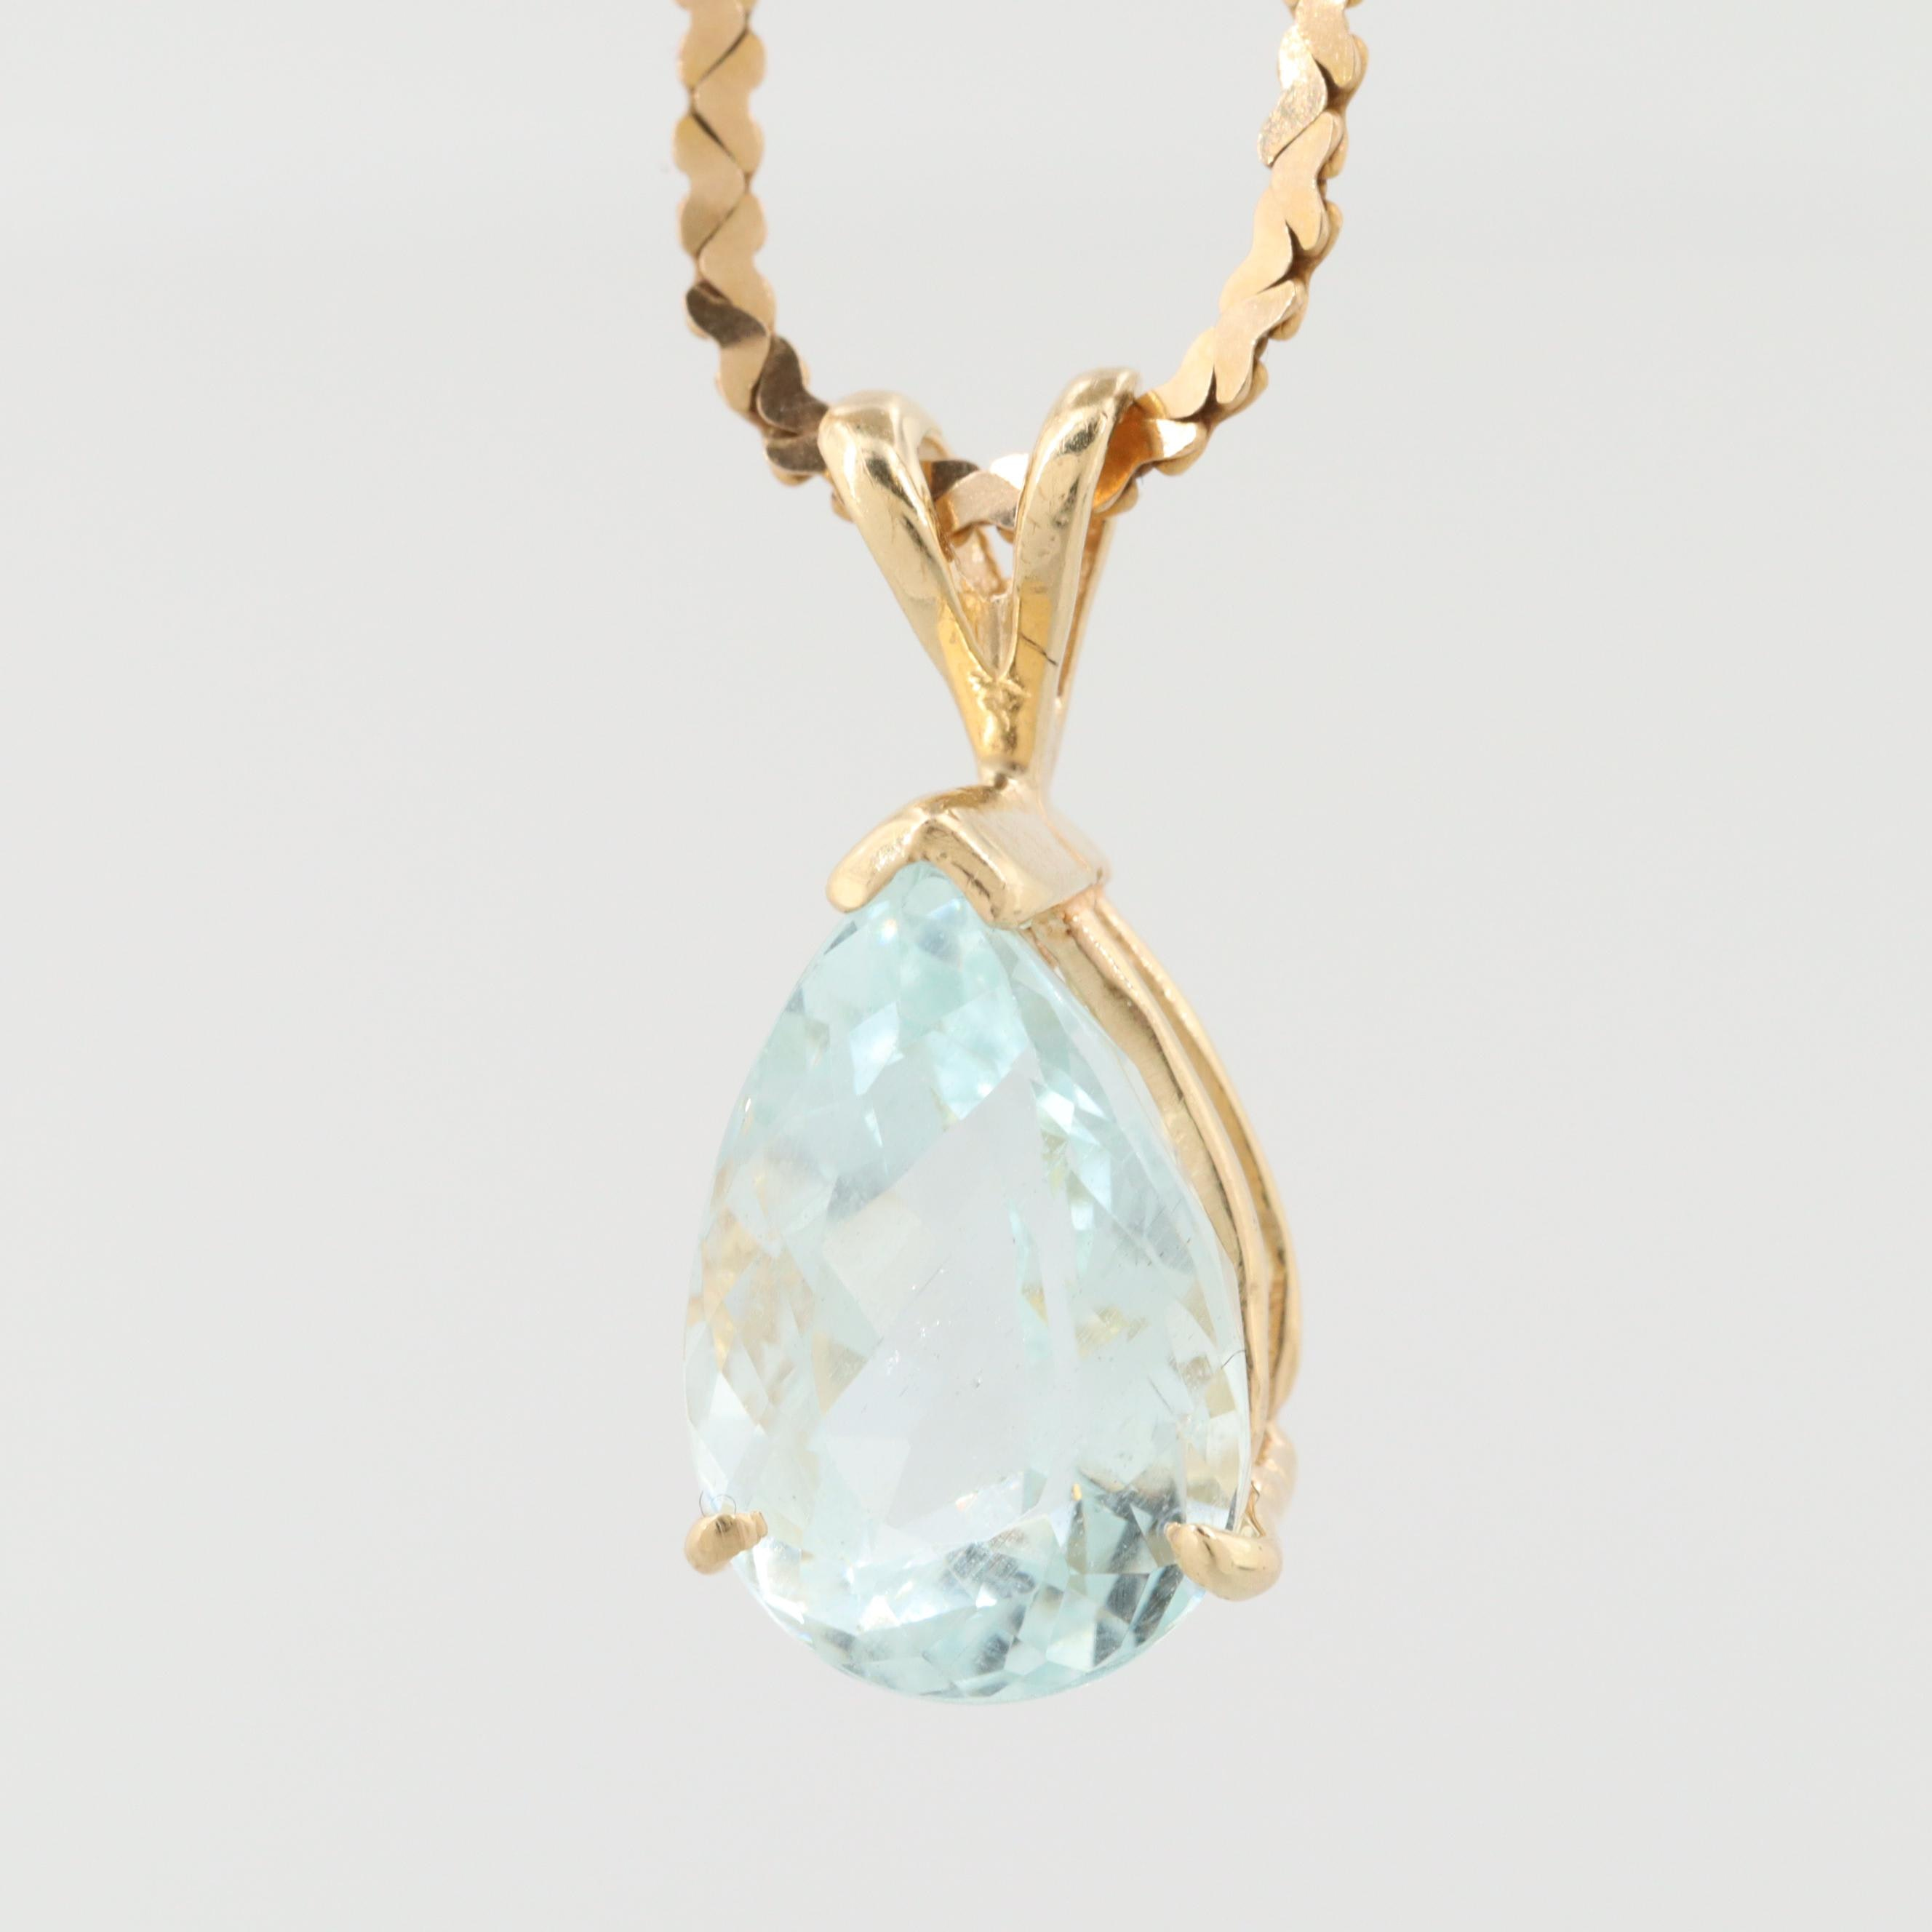 14K Yellow Gold Aquamarine Pendant Necklace